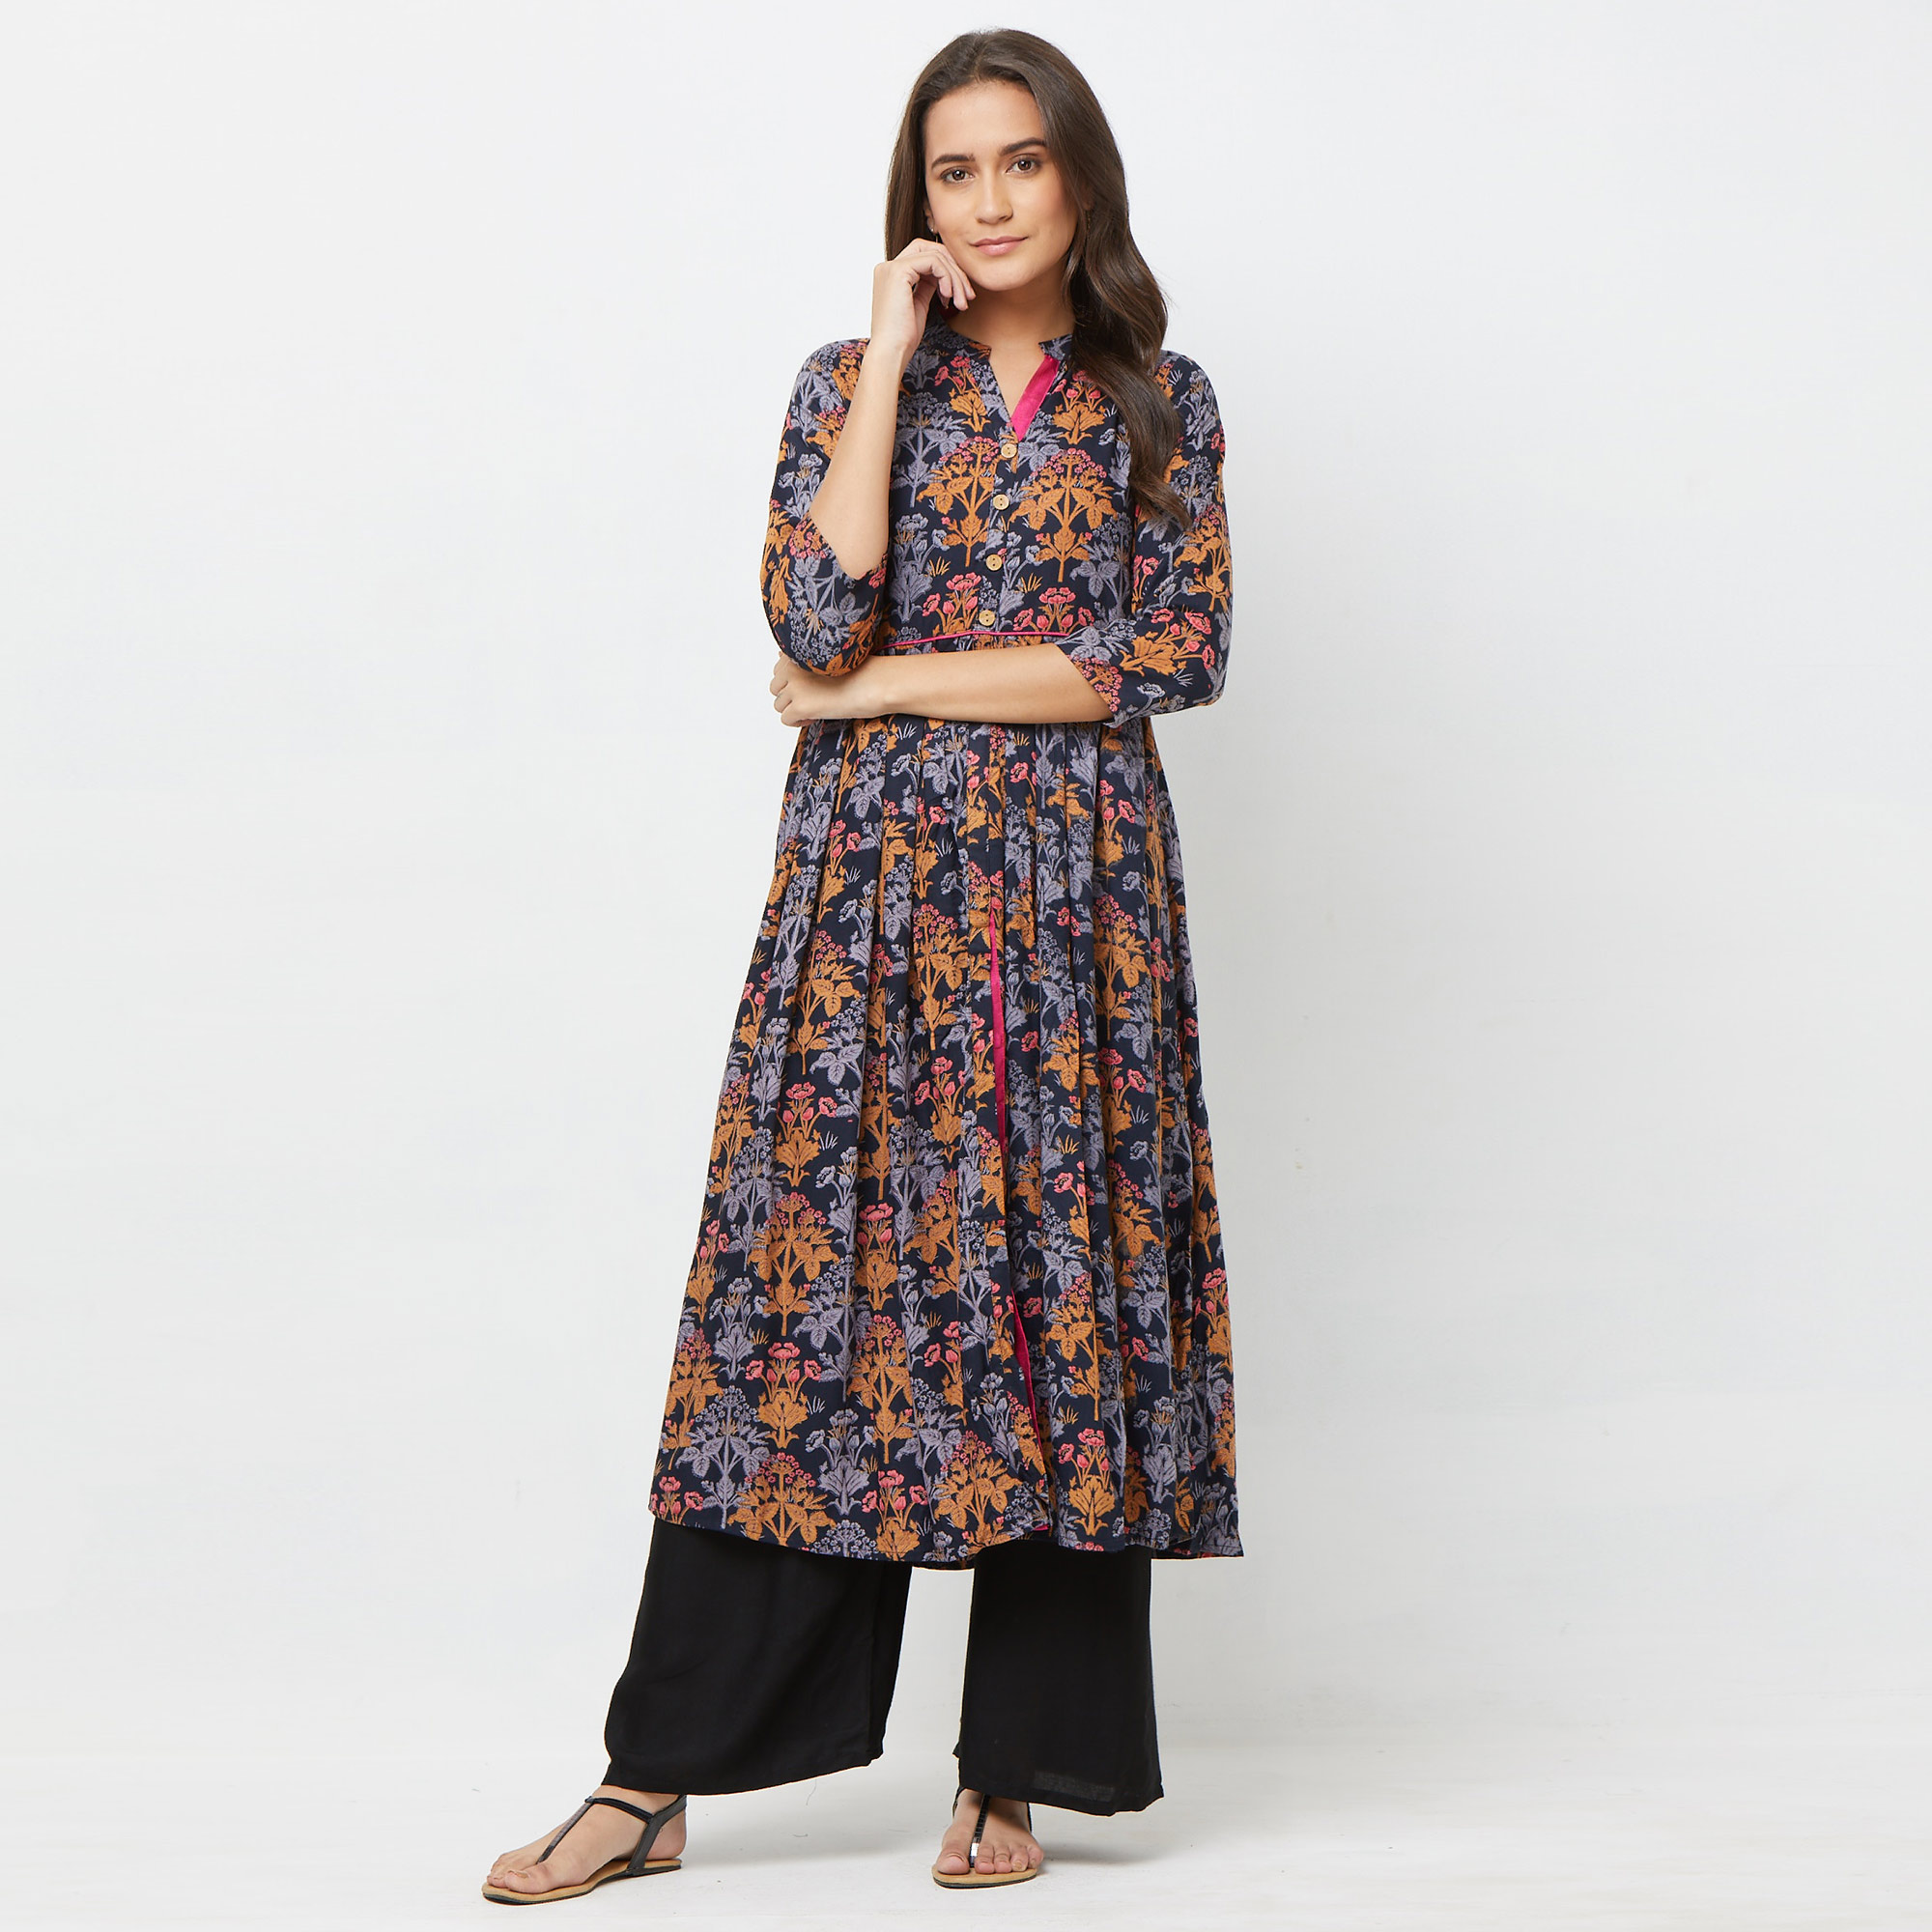 Marvellous Black Colored Partywear Printed Rayon Long Kurti